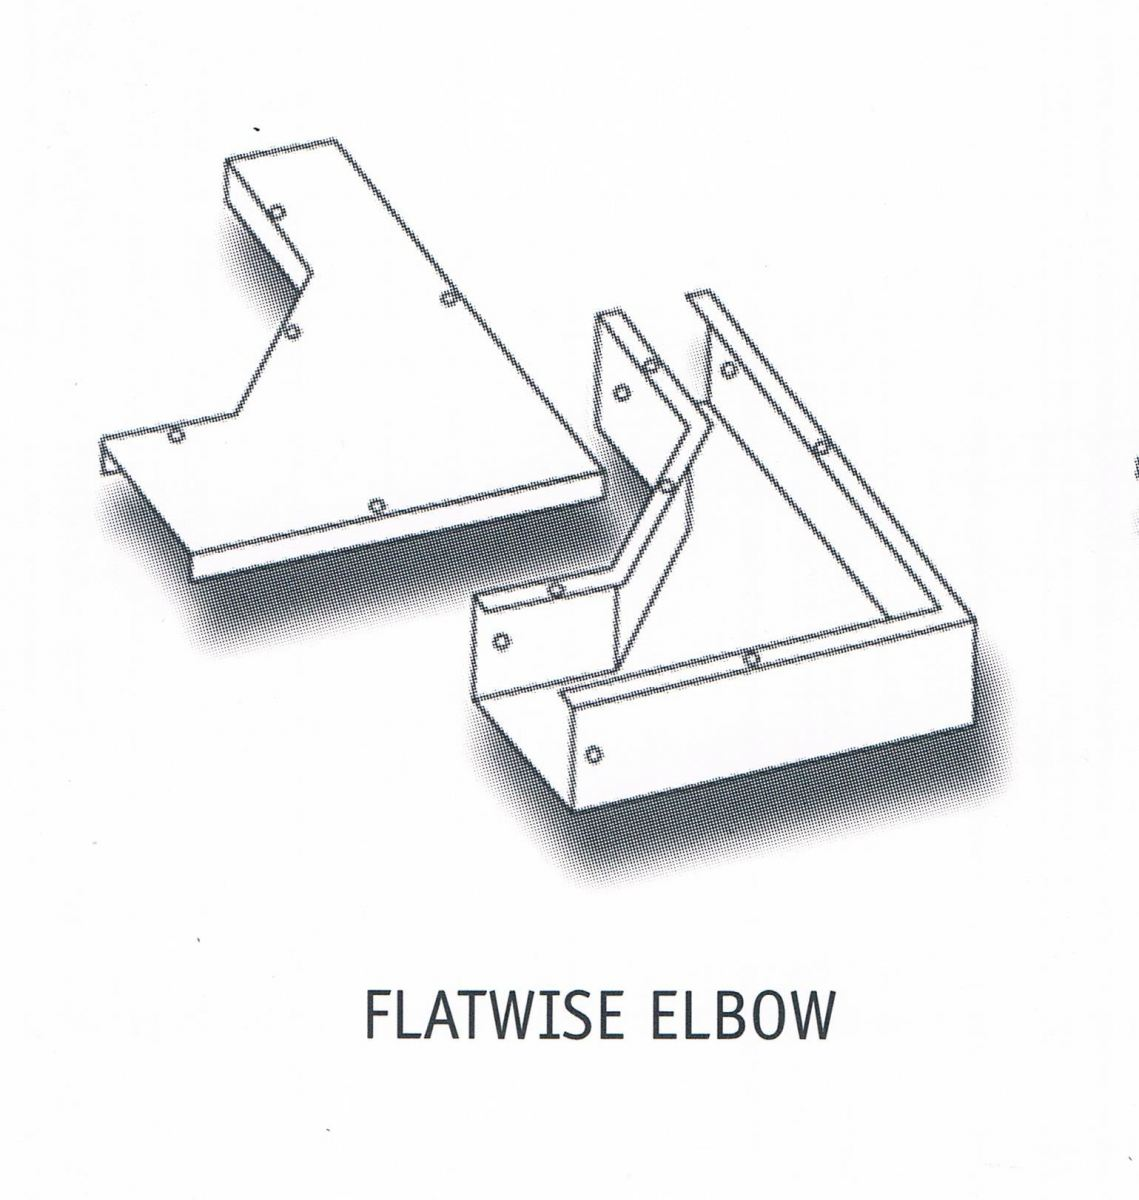 FLATWISE ELBOW Cable Trunking Cable Support Systems Johor Bahru (JB), Johor, Ulu Tiram, Malaysia Supplier, Suppliers, Supply, Supplies | Intech Electric Sdn Bhd